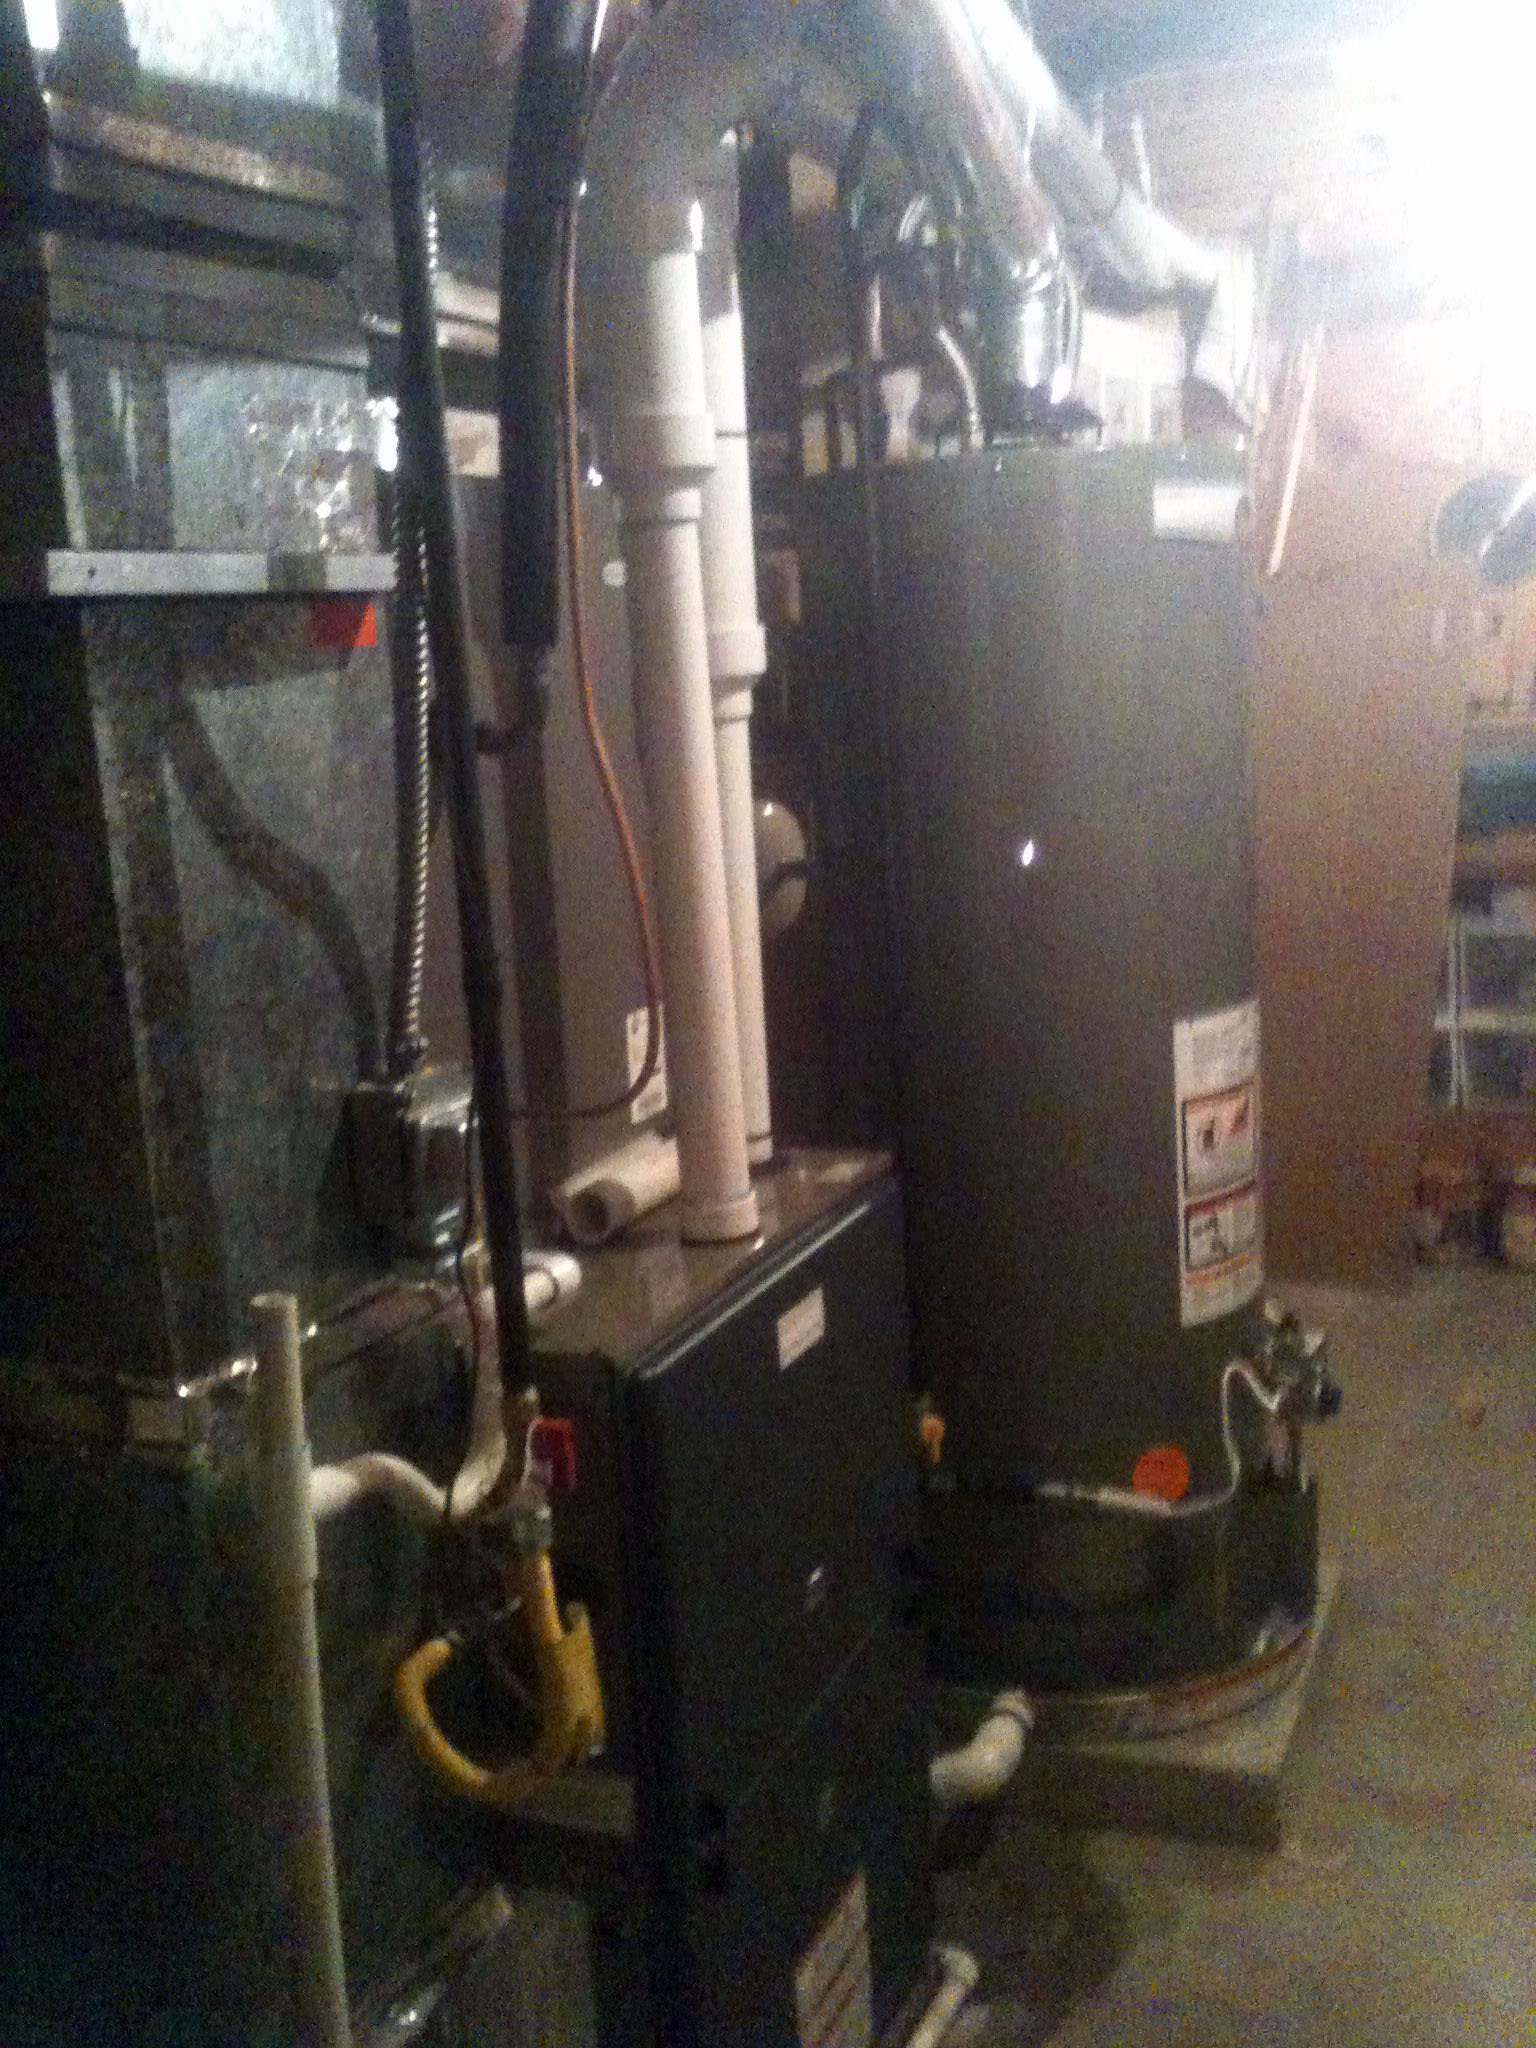 High Efficiency Residential System With Water Heater - Manitou Springs